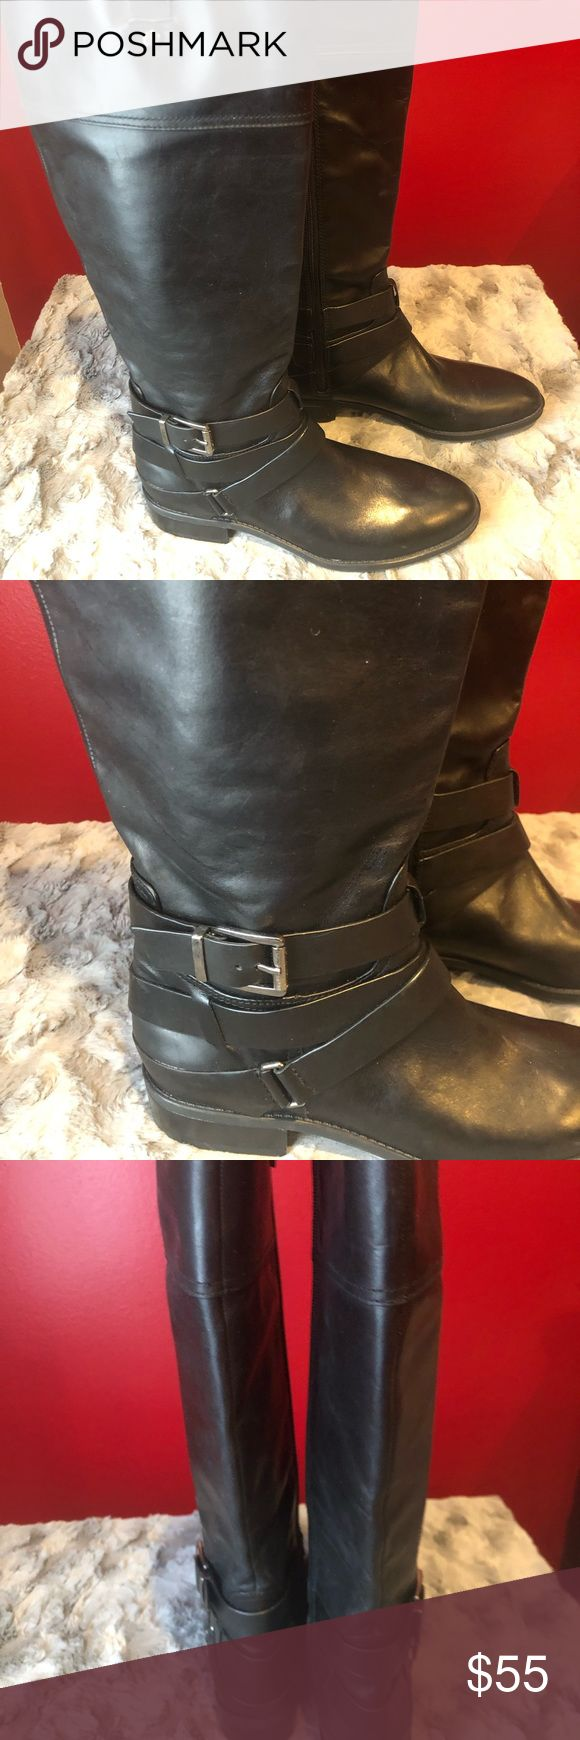 Vince Camuto Boot Brand New without tags and box Vince Camuto Boots Size 9 Vince…